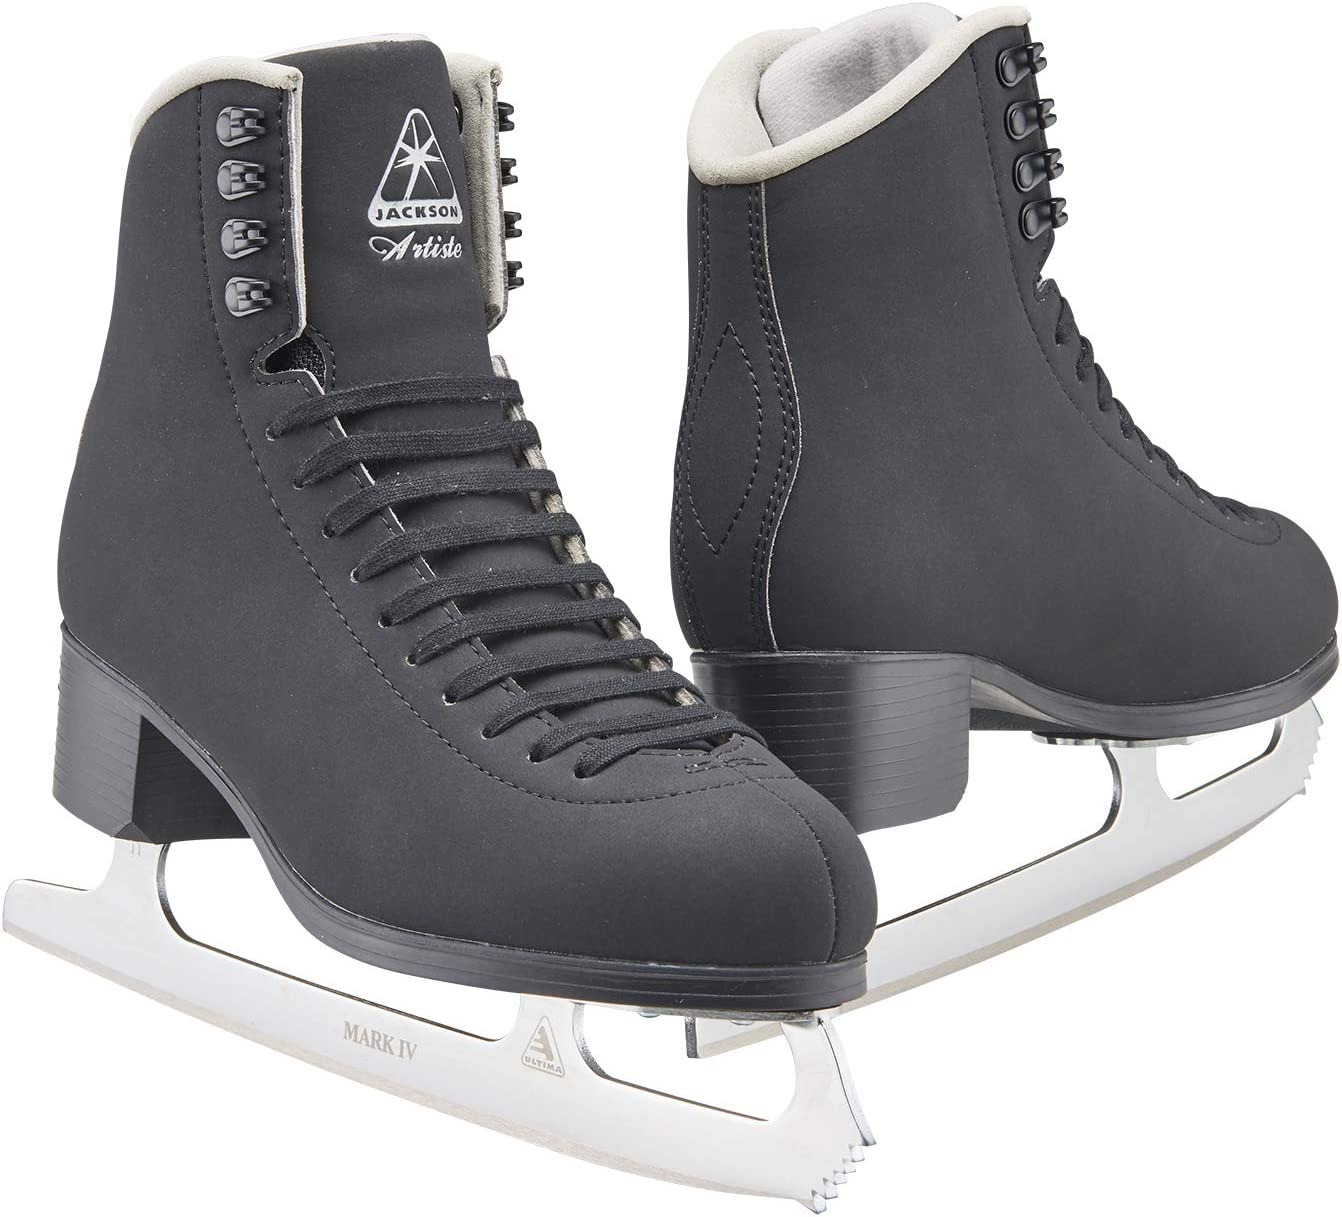 Jackson Ultima Artiste Figure Ice Skates for Womens, Girls, Mens and Boys in White and Black Colors – Improved, JUST LAUNCHED 2019